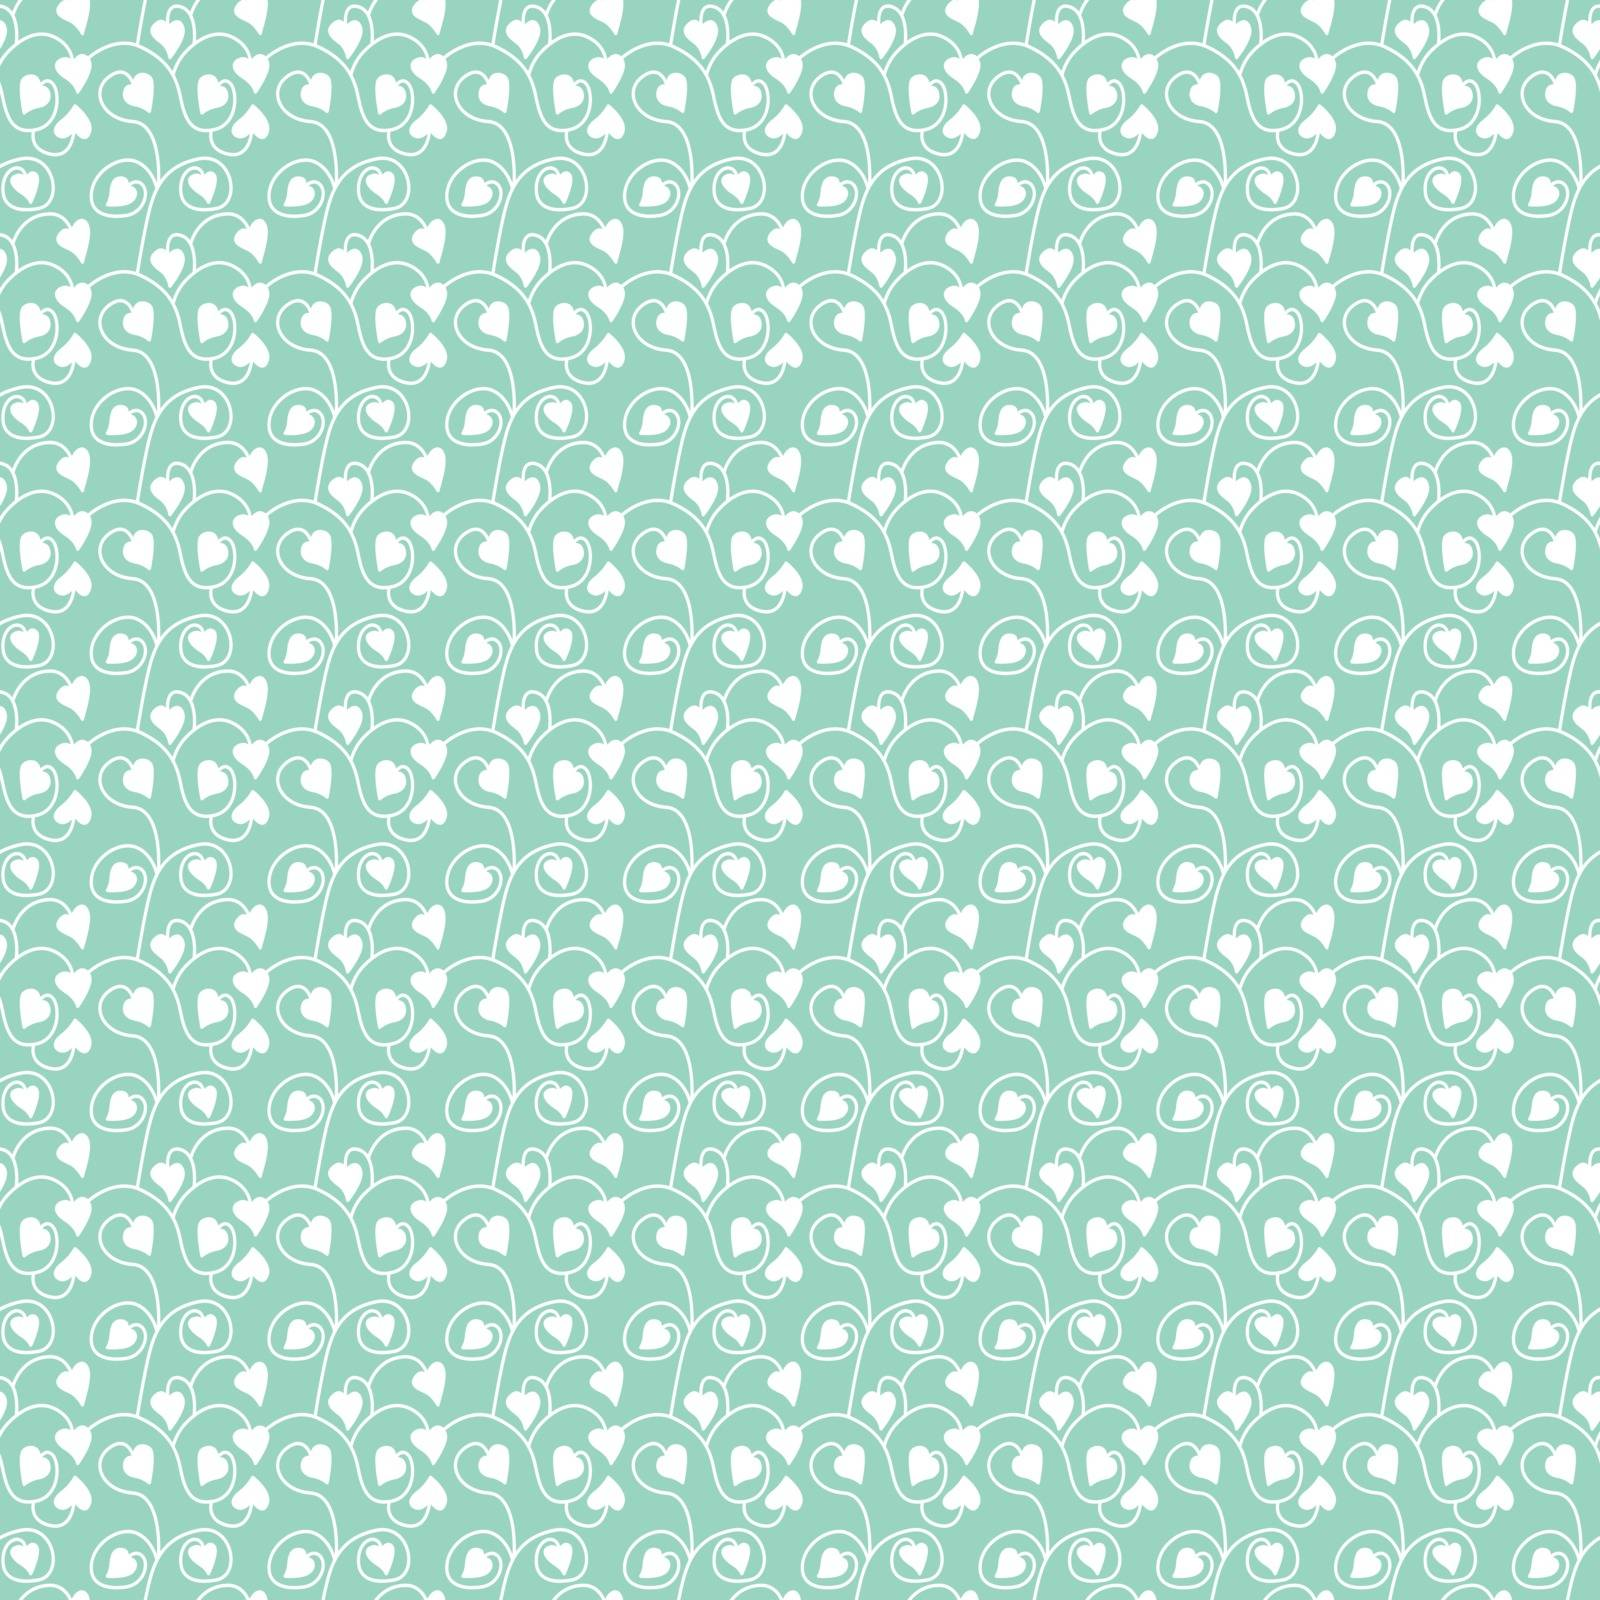 Seamless illustrated pattern made of white leaves on turquoise background